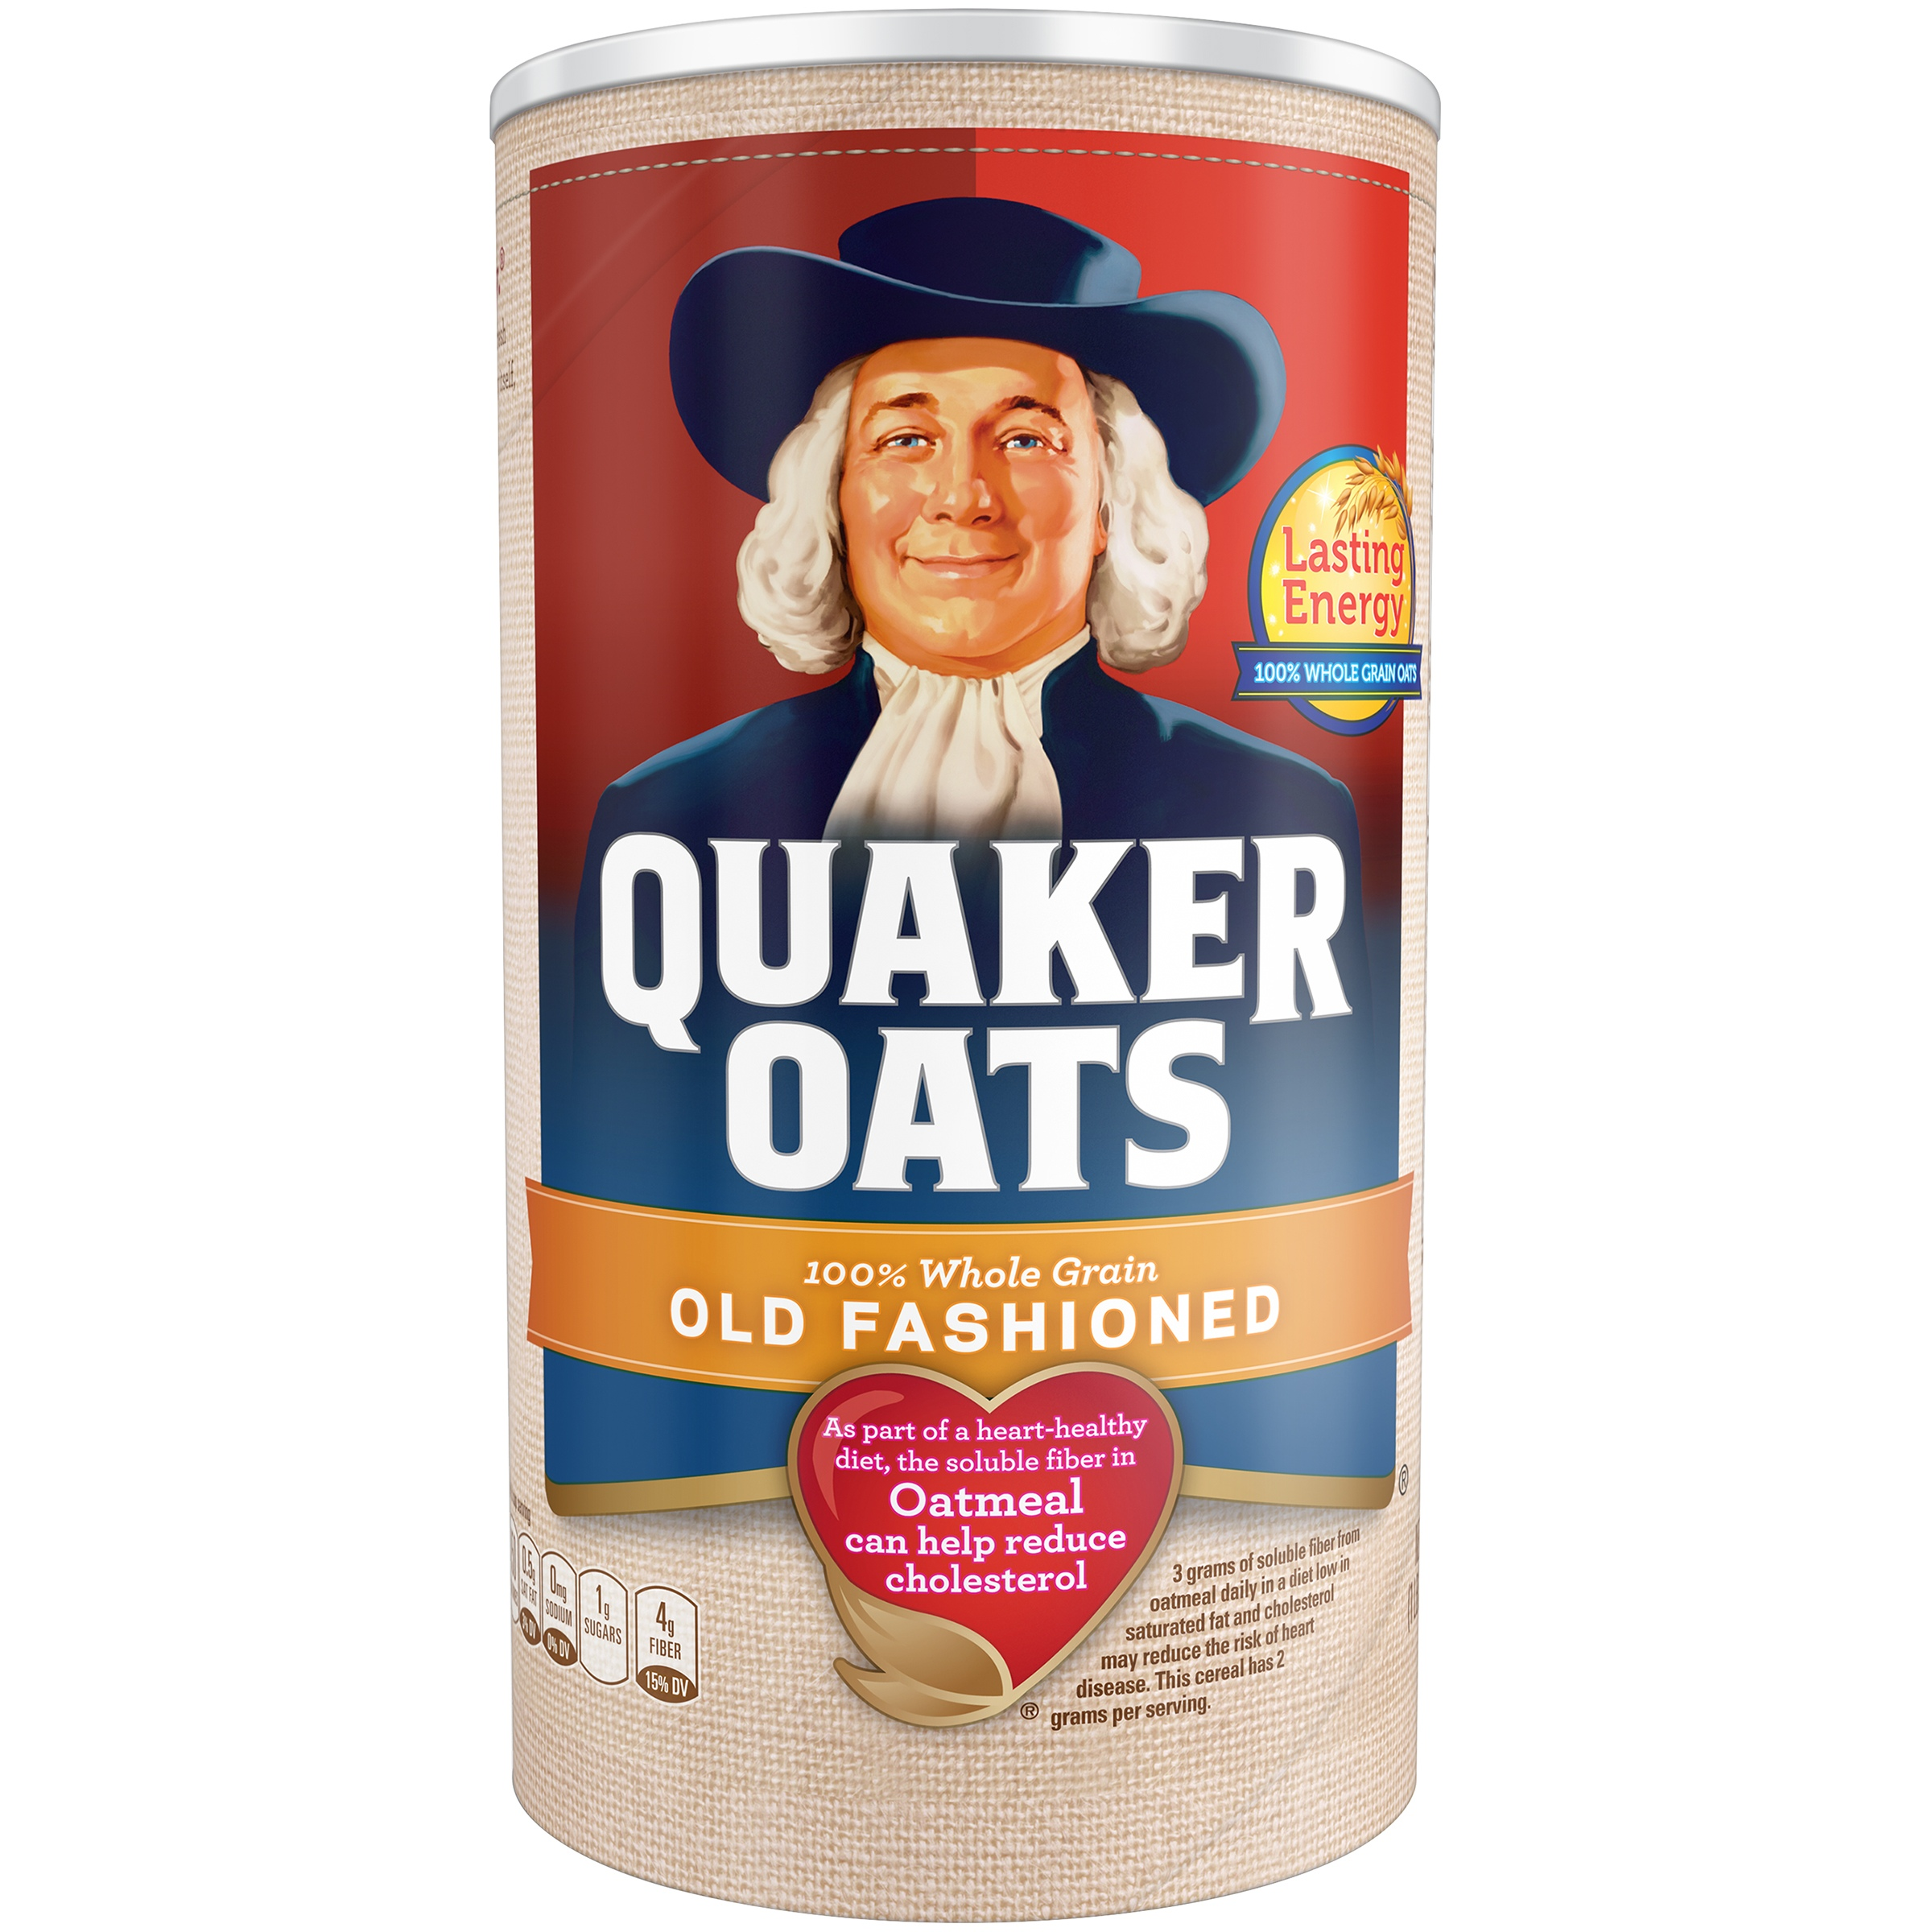 Quaker Oats, Old Fashioned Oatmeal, 18 oz Canister